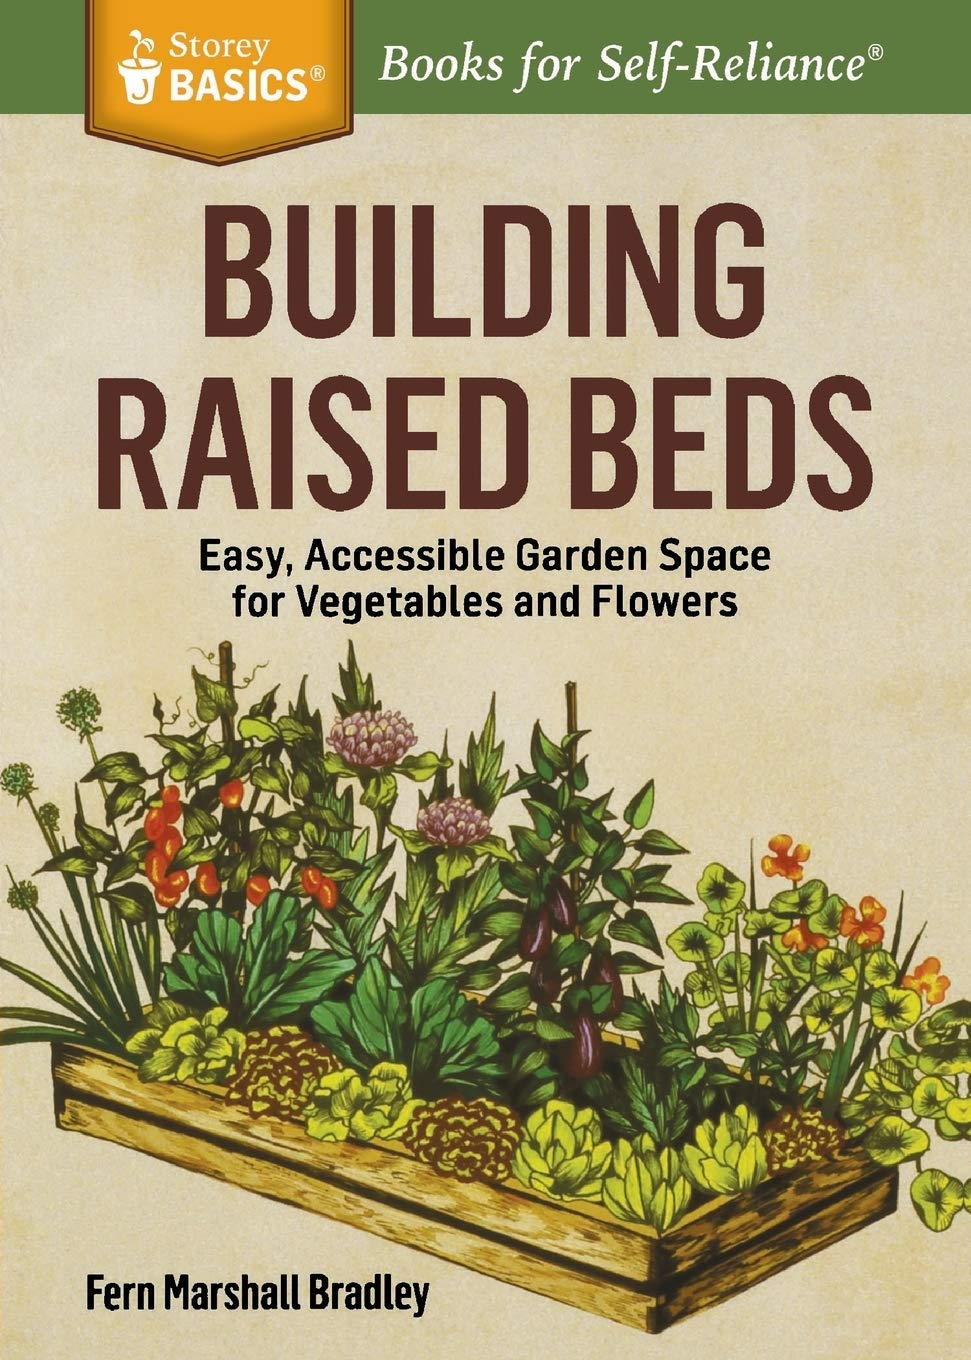 Building Raised Beds: Easy, Accessible Garden Space for ... on greenhouse design plans, raised vegetable garden design ideas, cedar raised garden bed plans, privacy fence design plans, best raised garden plans, diy raised garden beds plans, raised garden layout, raised bed garden box design, marshmallow catapult design plans, cheap raised garden bed plans, raised garden planting plans, corner pergola design plans, small garden design plans, vegetable garden design plans, raised bed gardening designs, exhibition booth design plans, attached pergola design plans, easy raised garden plans, luxury home design plans,